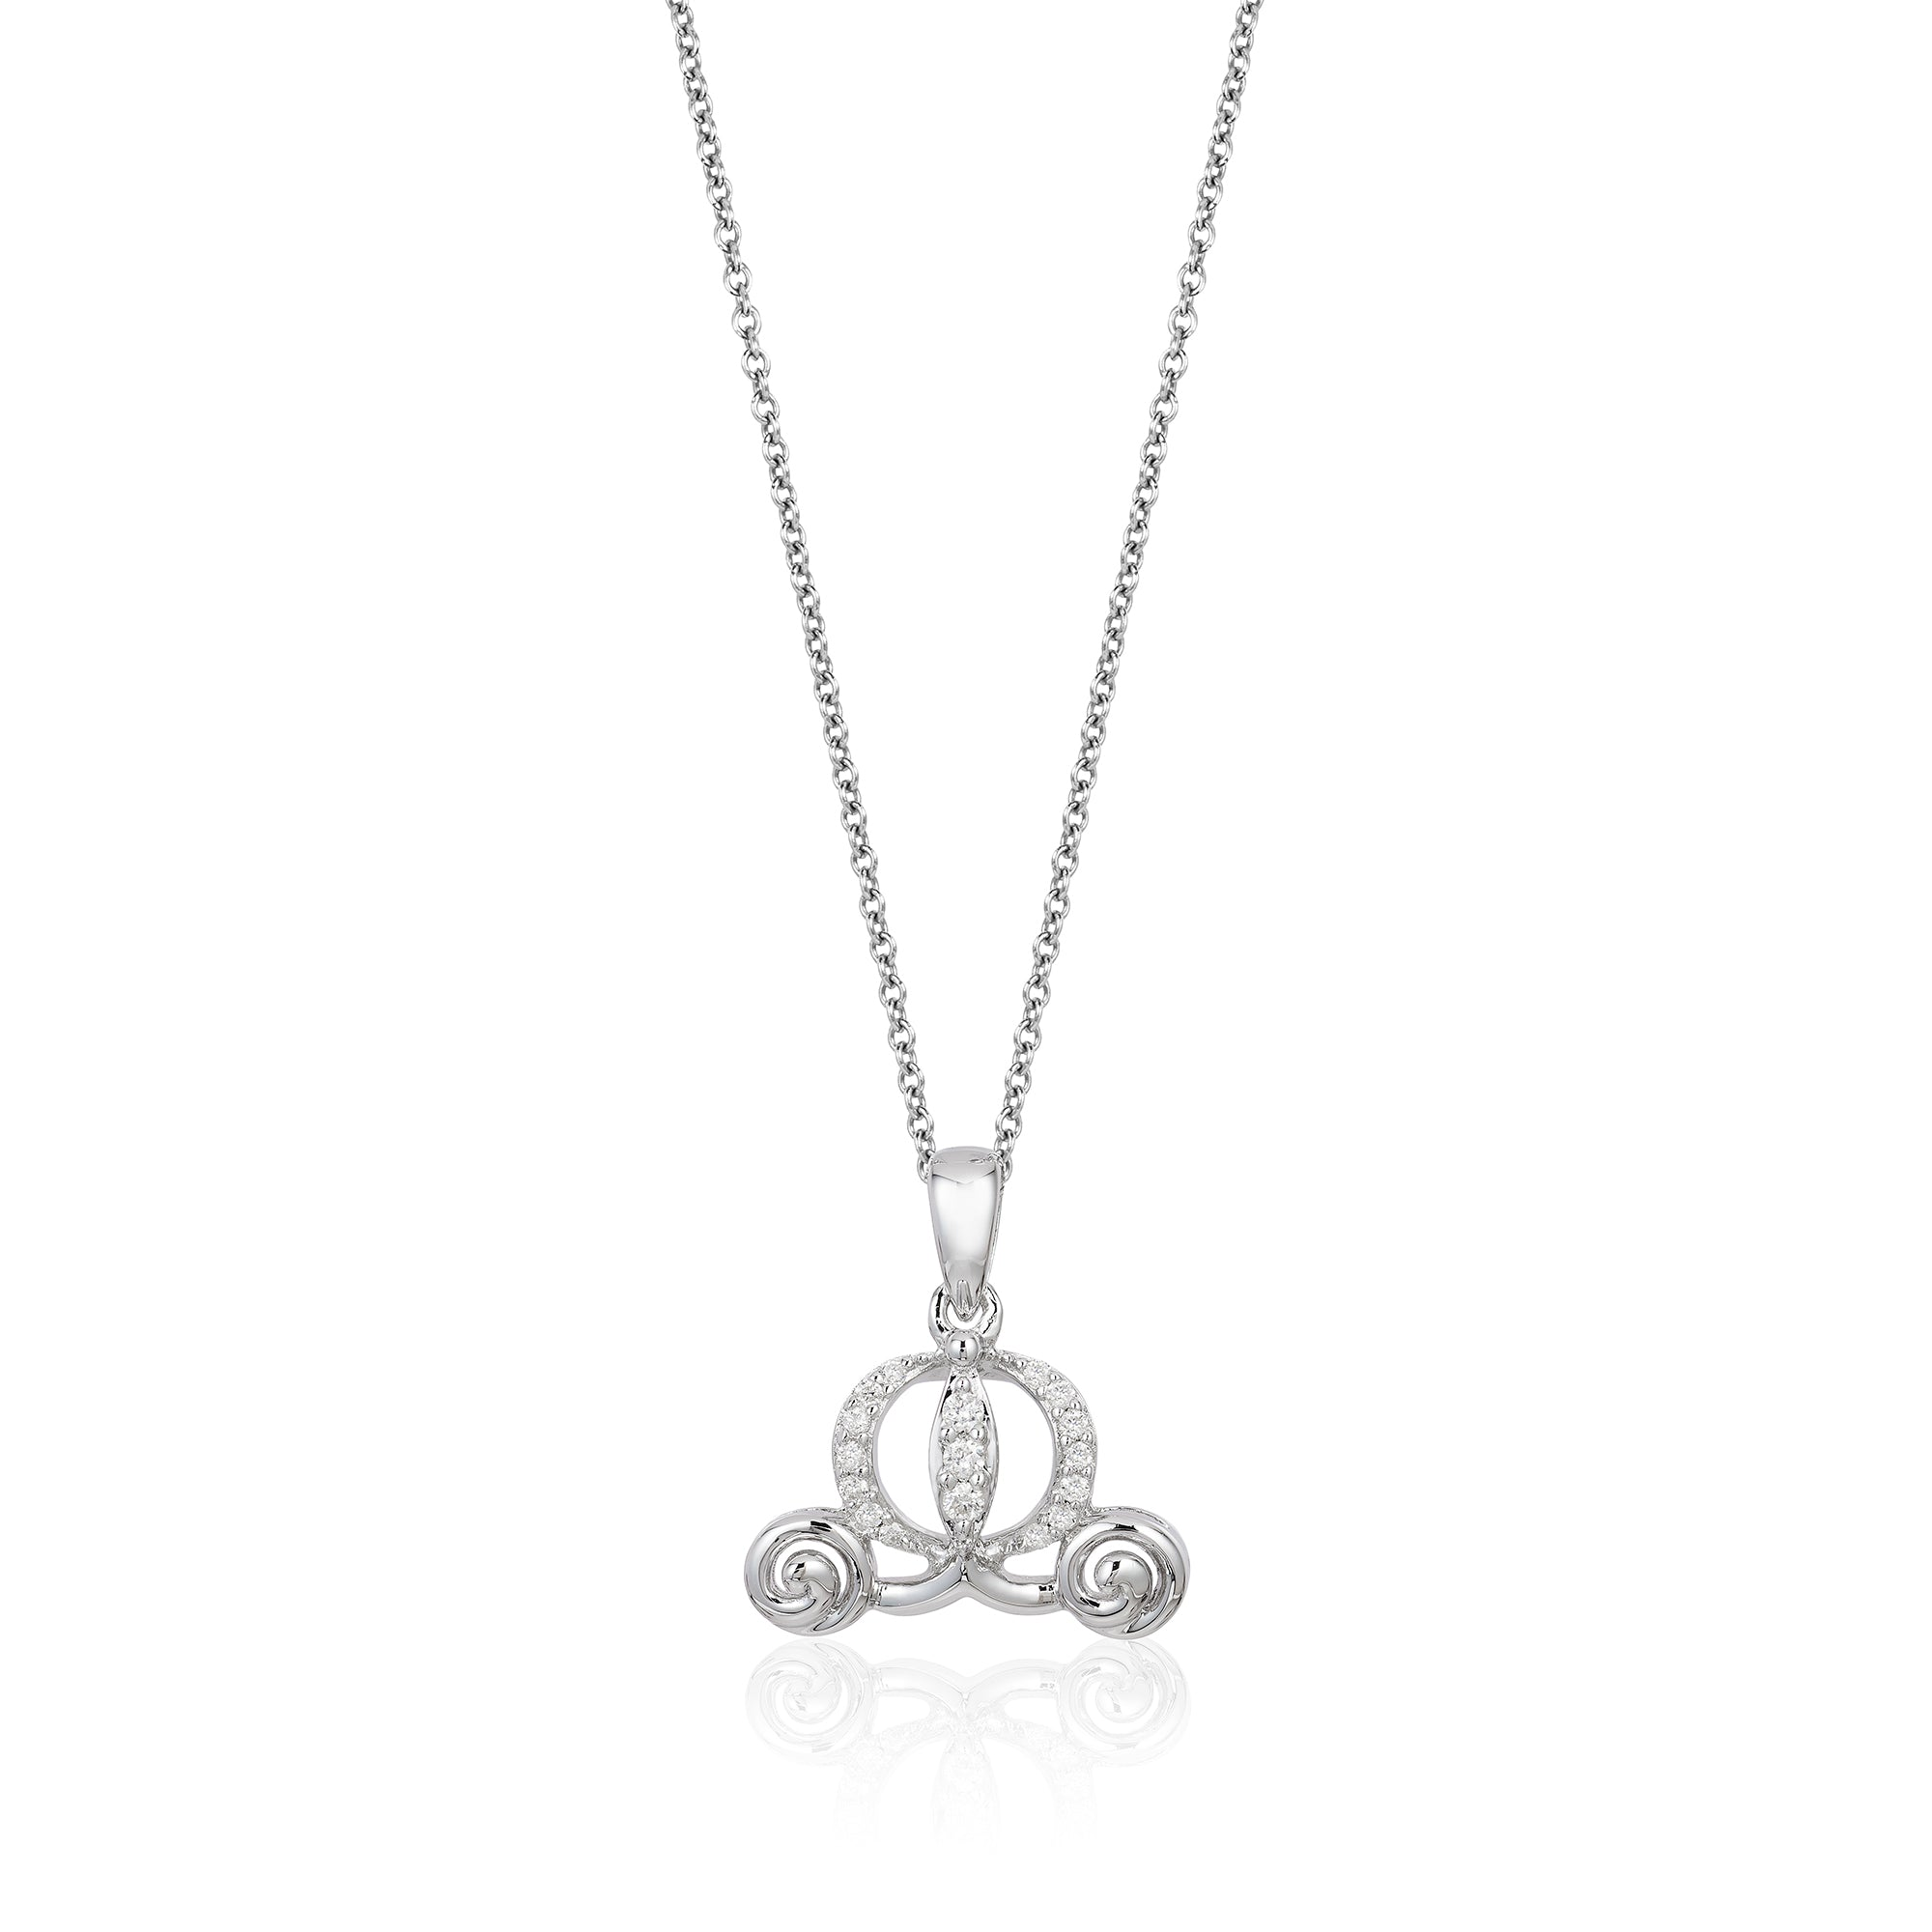 enchanted_disney-cinderella_carriage_pendant_0.10CTTW_1